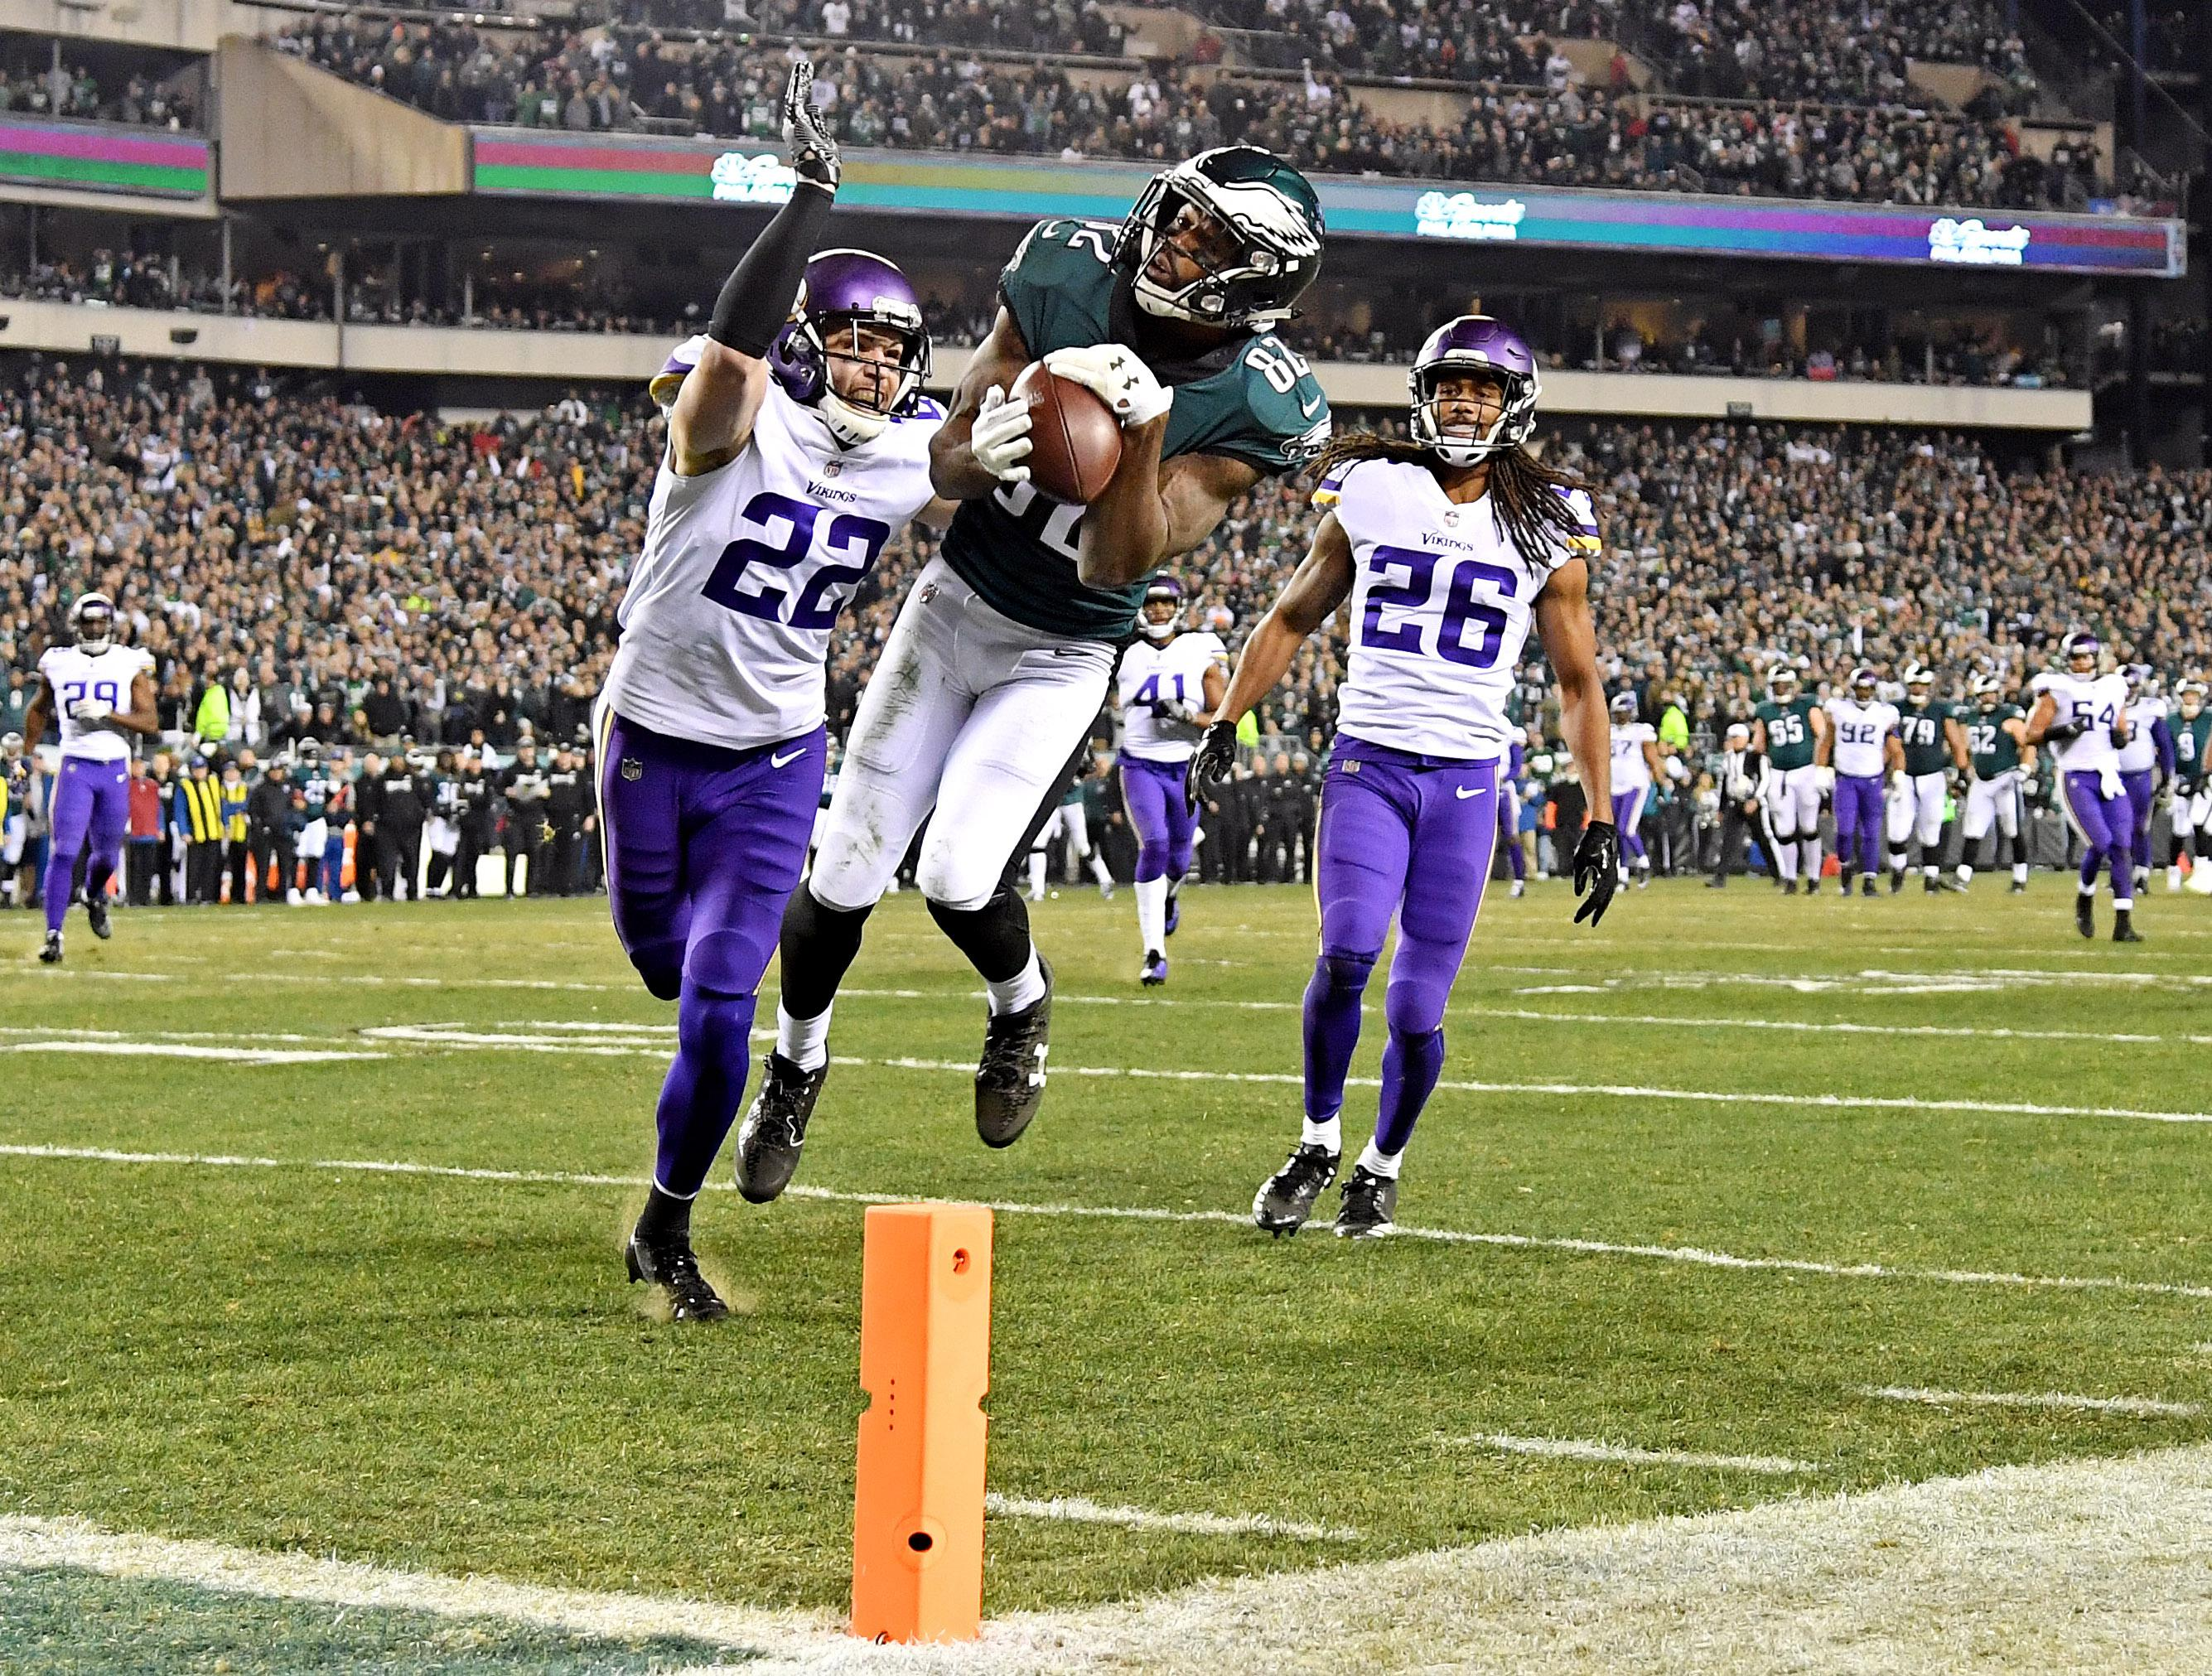 Torrey Smith hauls in a stunning pass from Nick Foles for a touchdown